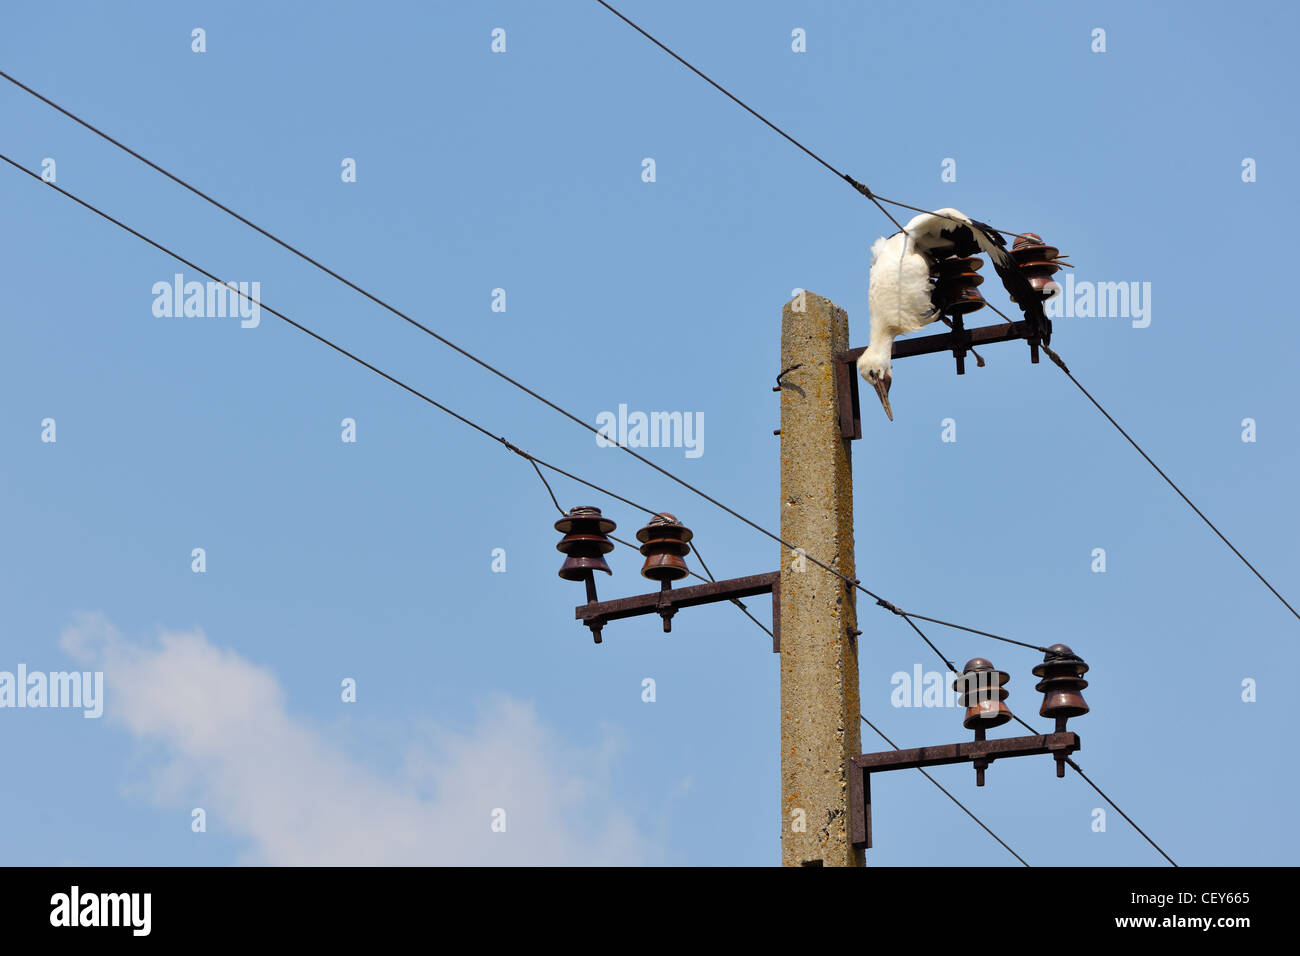 Man On High Voltage Wire : Dead bird on high voltage electricity wires killed young